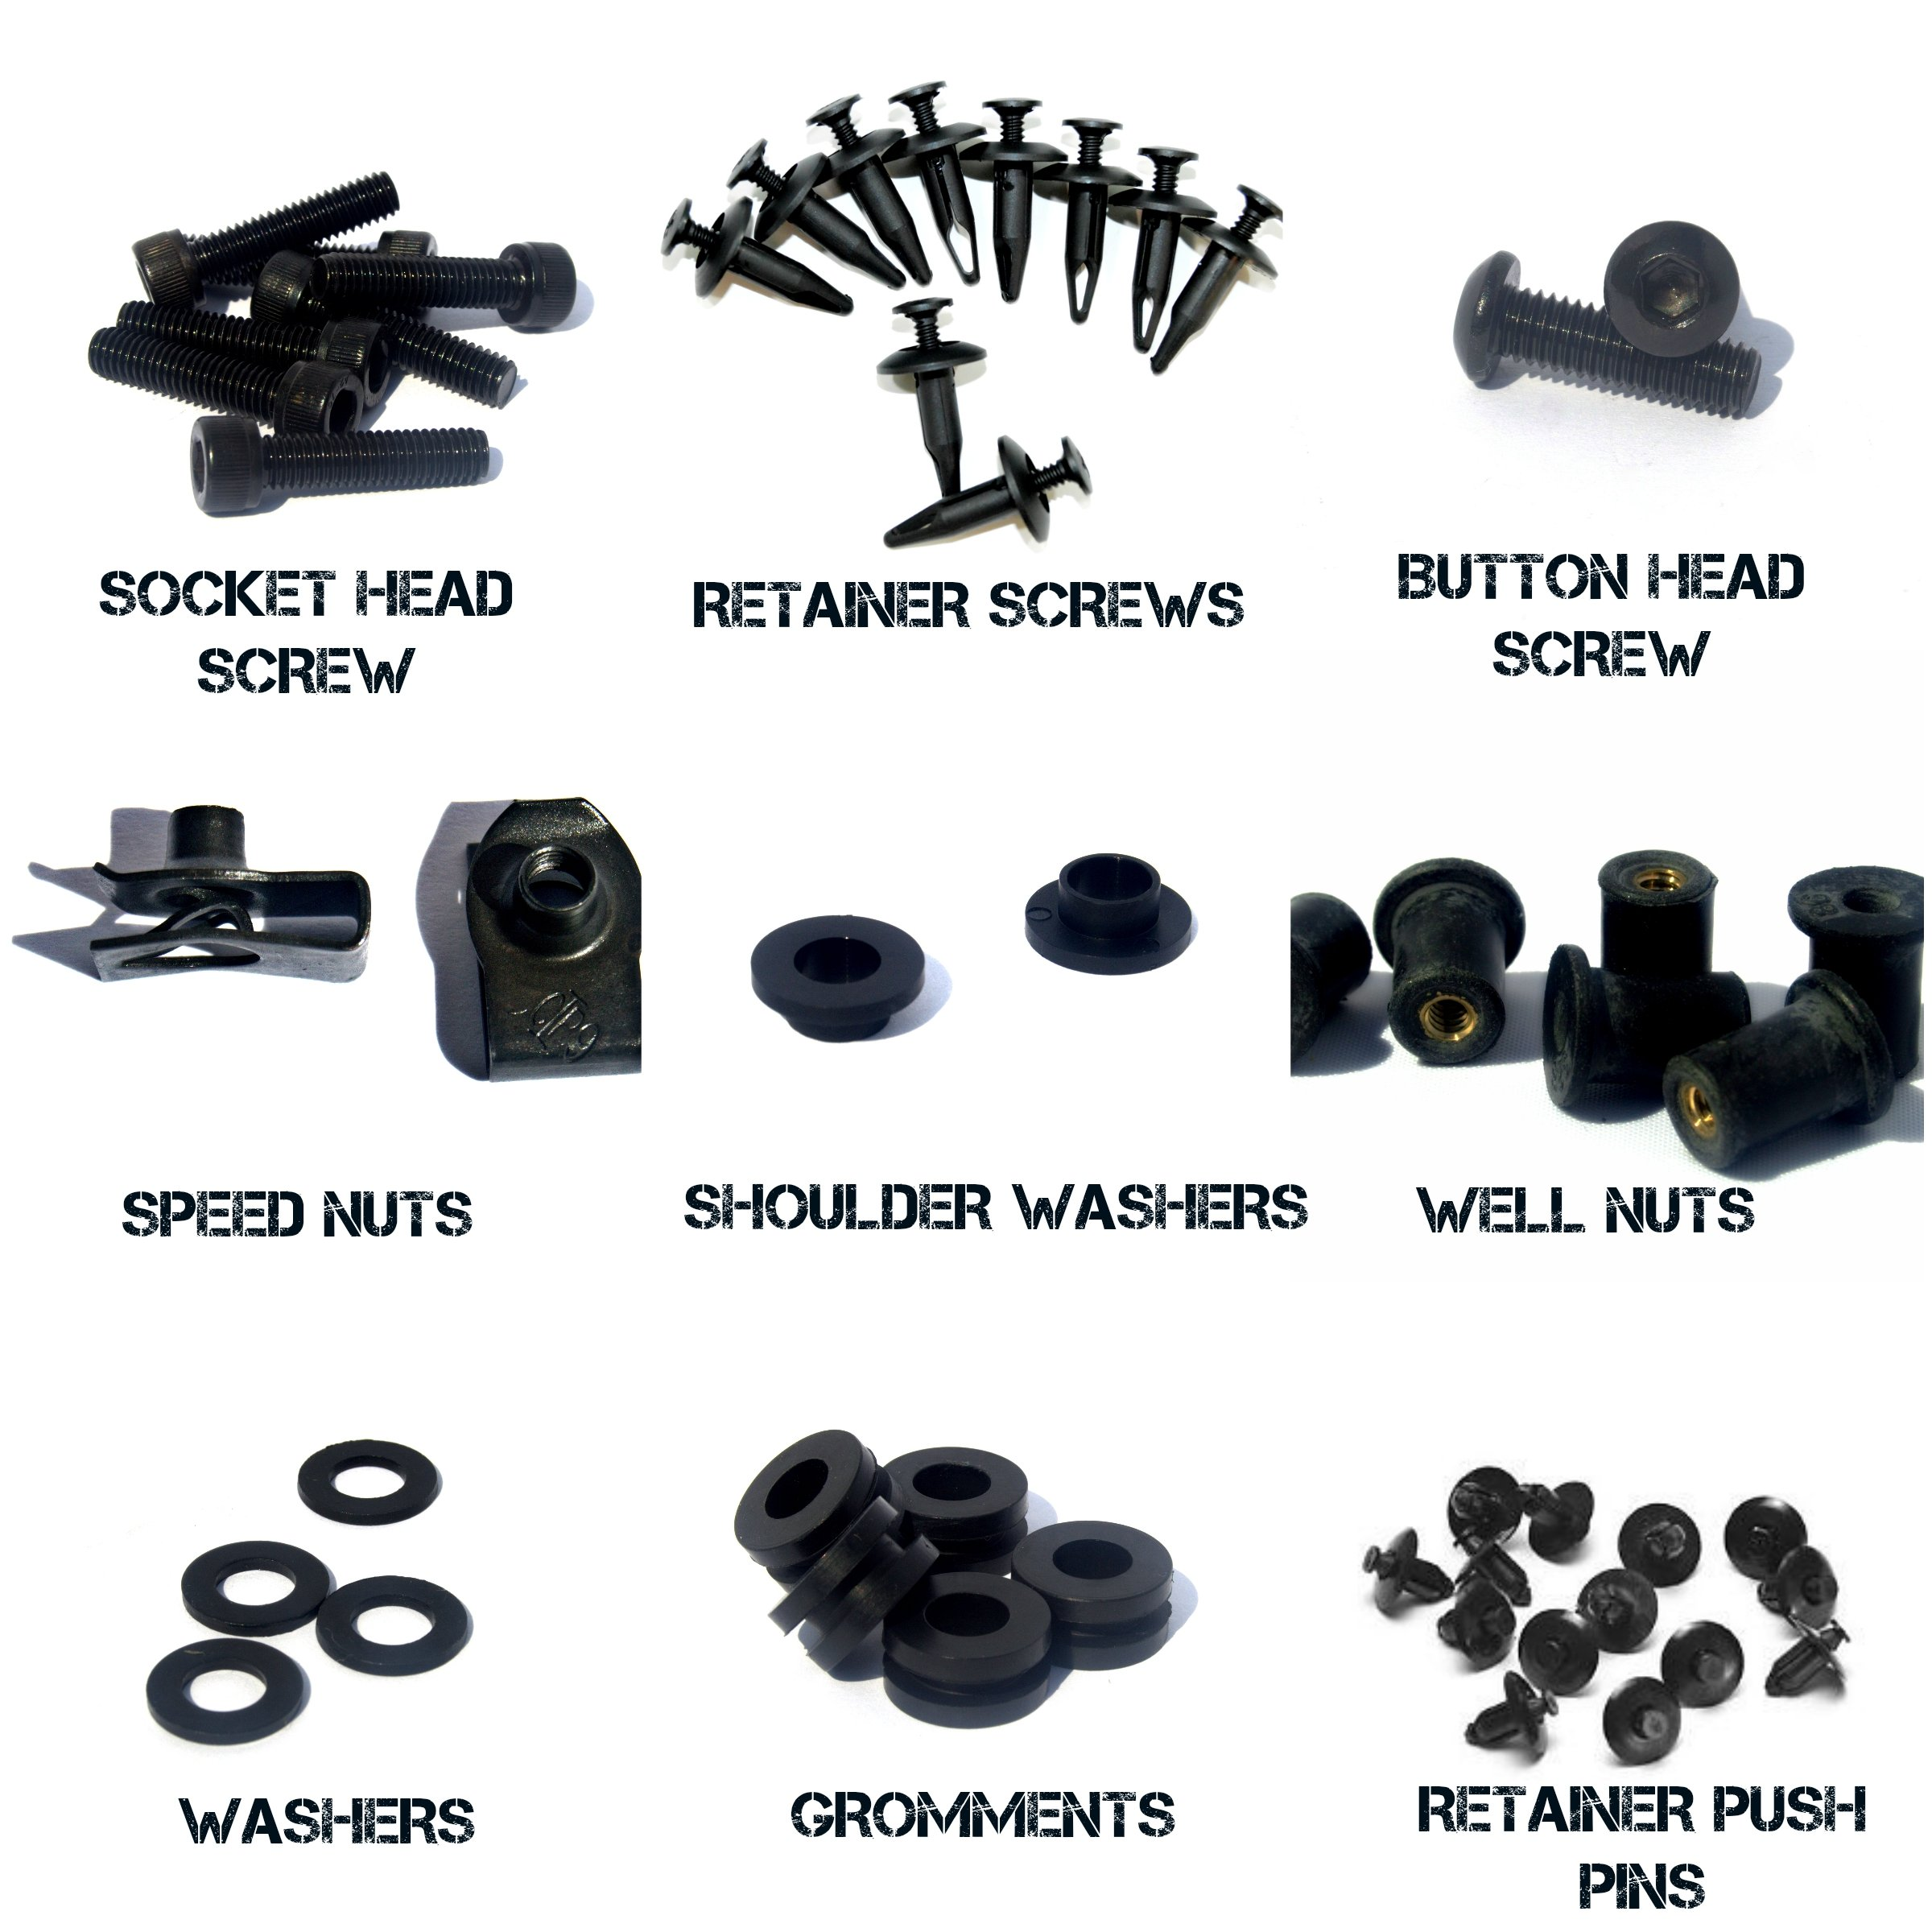 Complete Motorcycle Fairing Bolt Kit Yamaha 2004 - 2006 YZF-R1 Body Screws, Fasteners, and Hardware by Bike Boltz (Image #4)